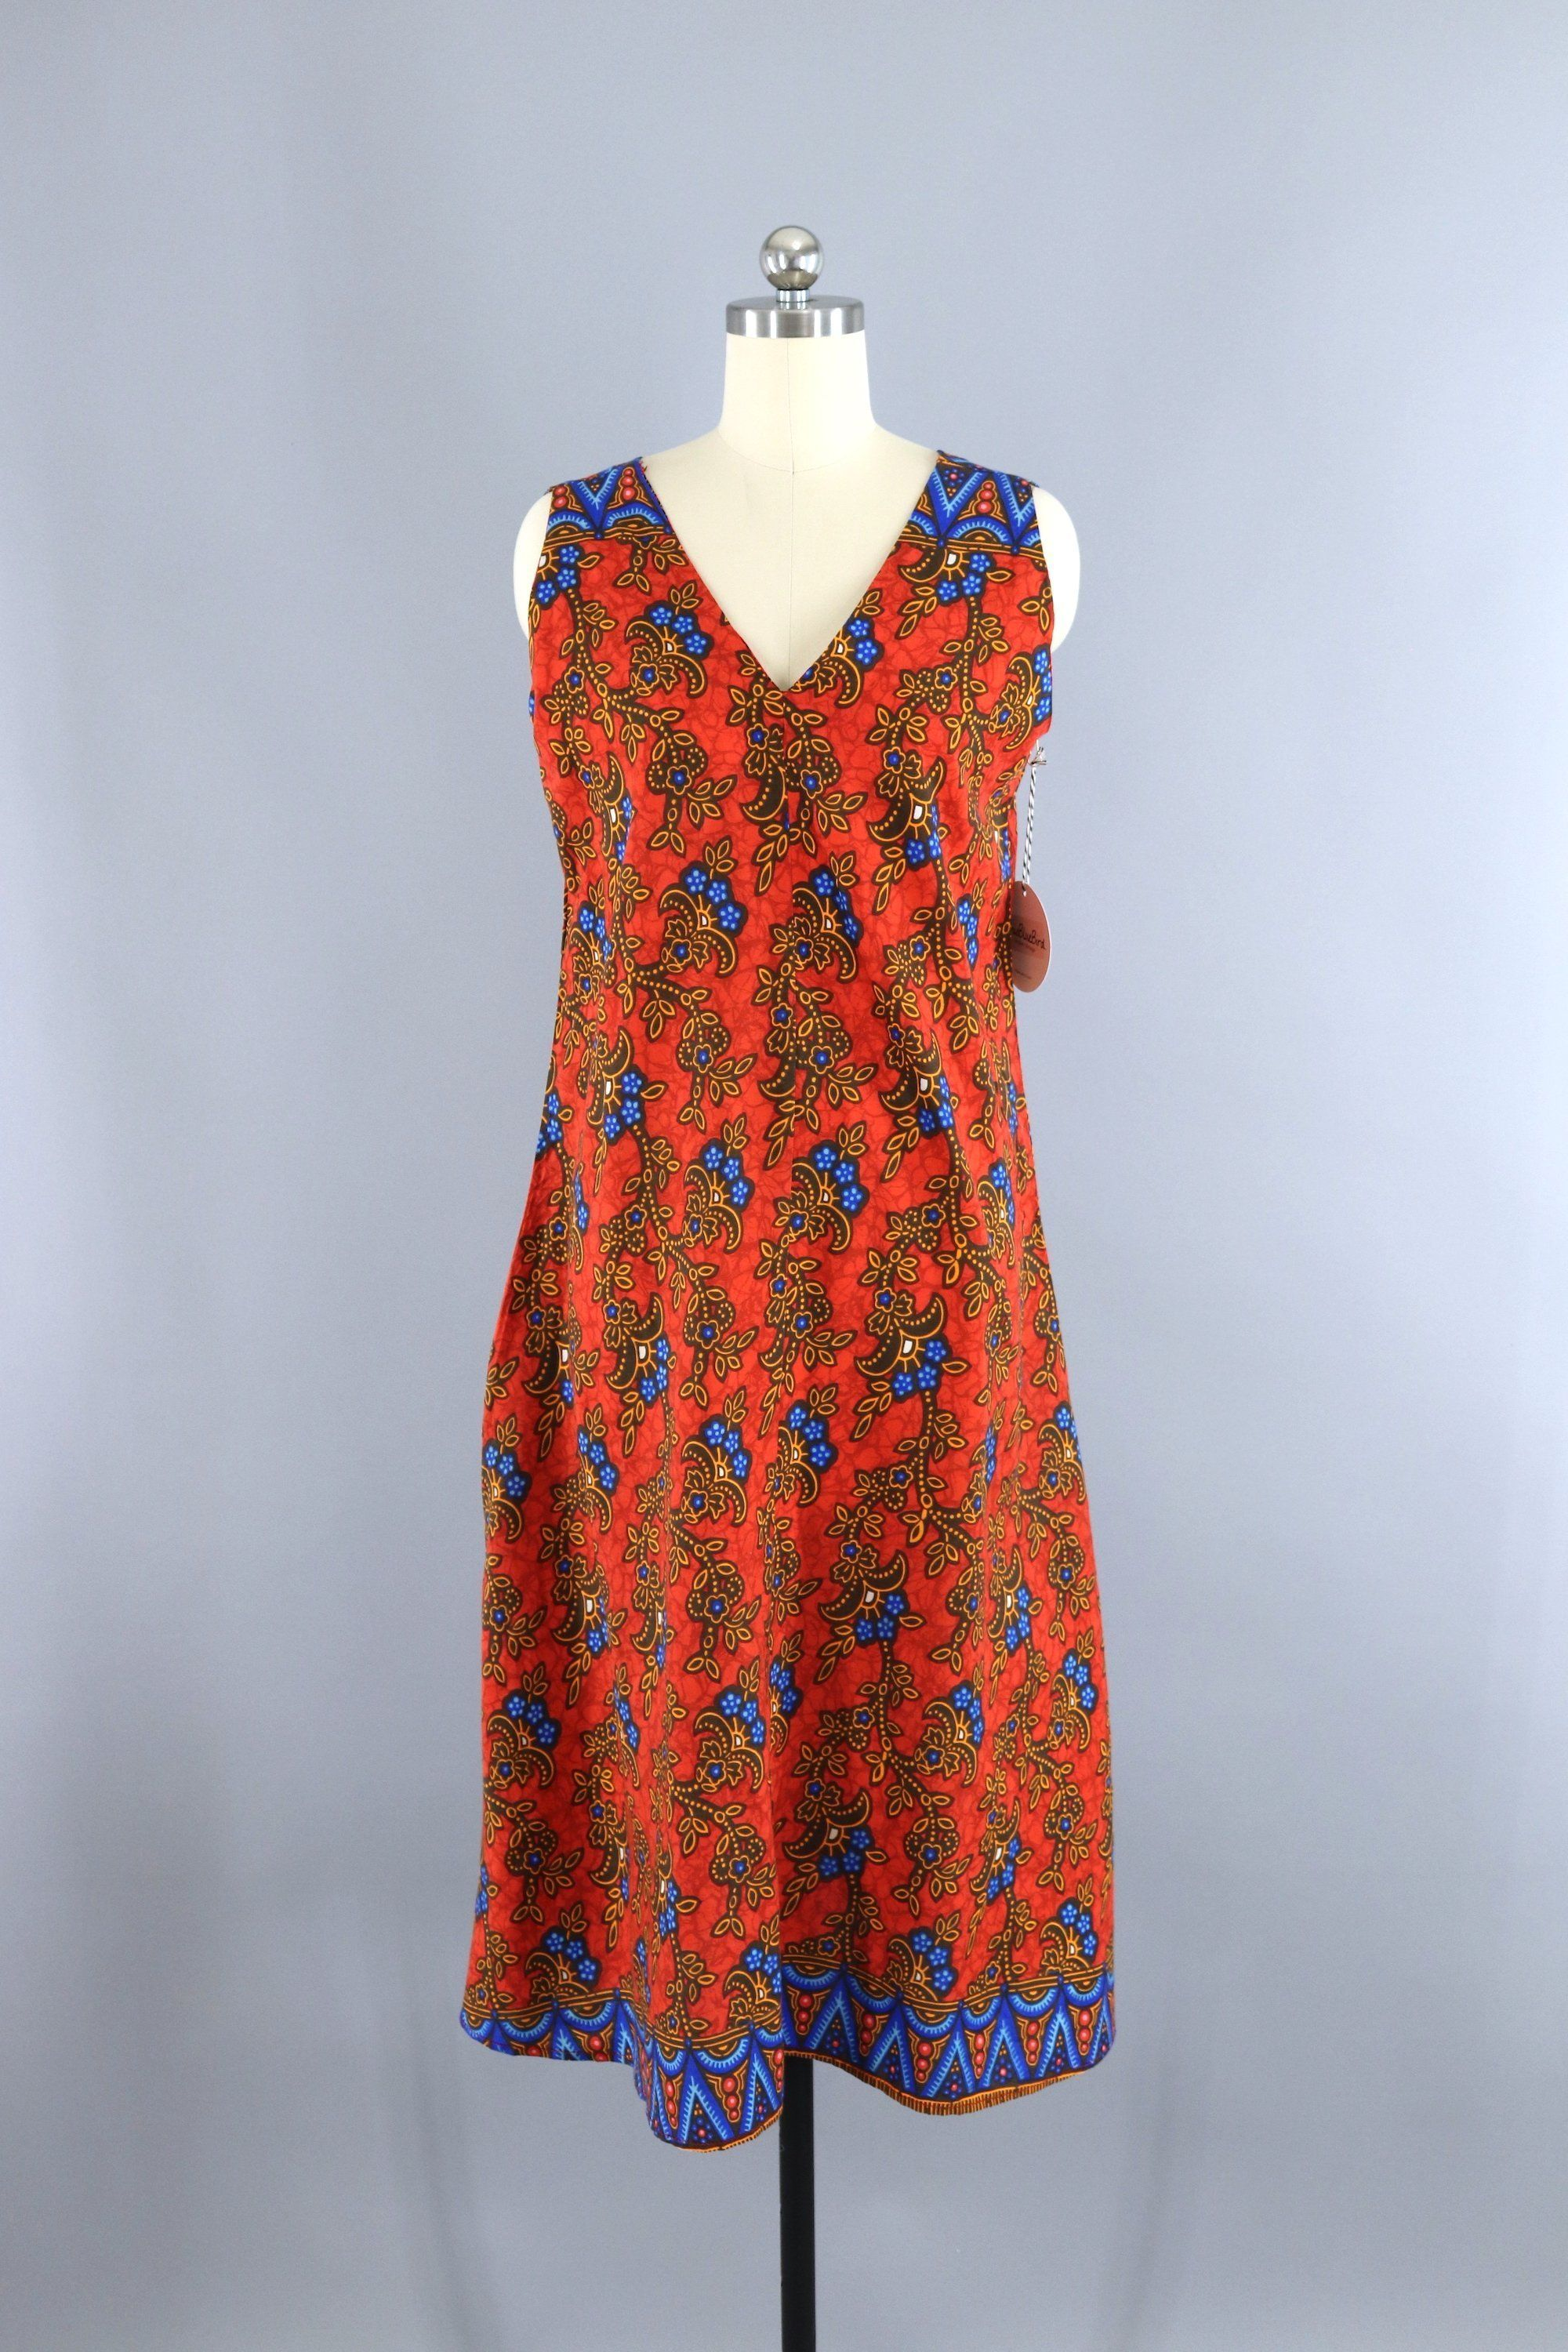 Vintage 1970s Kenya African Dress Orange Batik Print vintage shopvintage